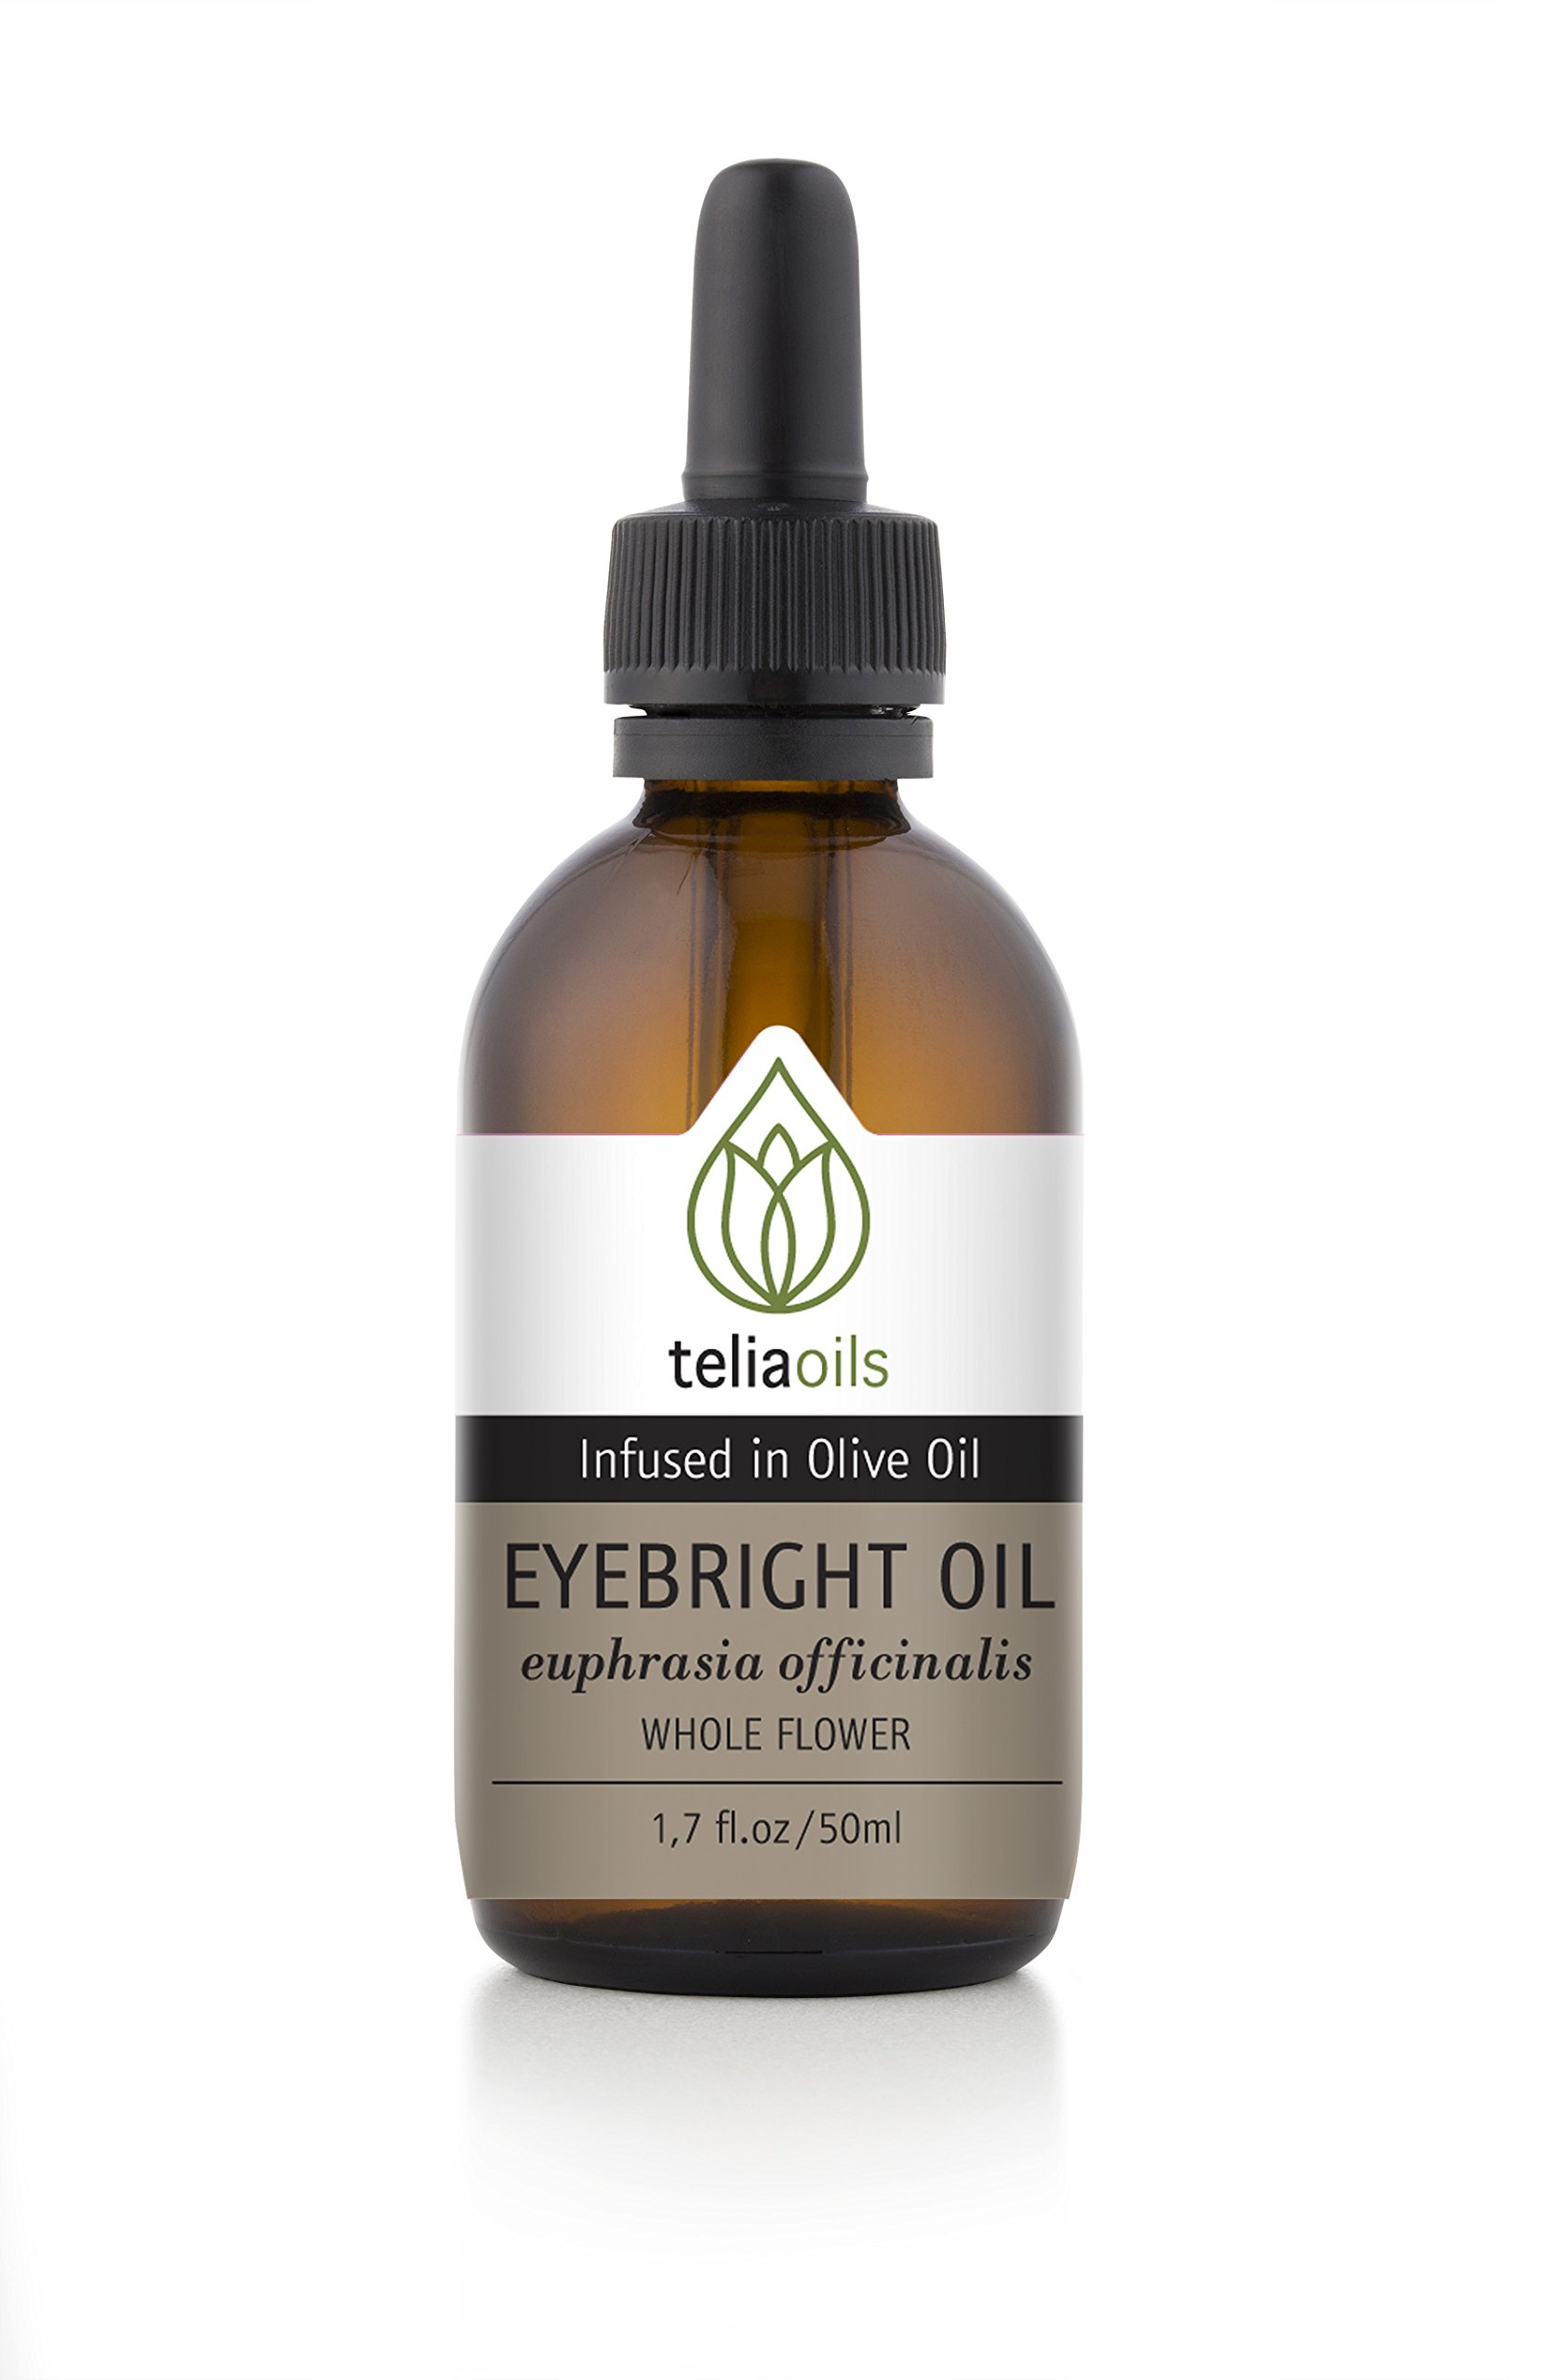 Eyebright (Euphrasia Officinalis) Infused Oil Extract (Macerated Oil), 1.7 Oz - 50 Ml / Hydrates the Delicate Skin Around the Eye Area - Protects Against the Appearance of Fine Lines and Wrinkles